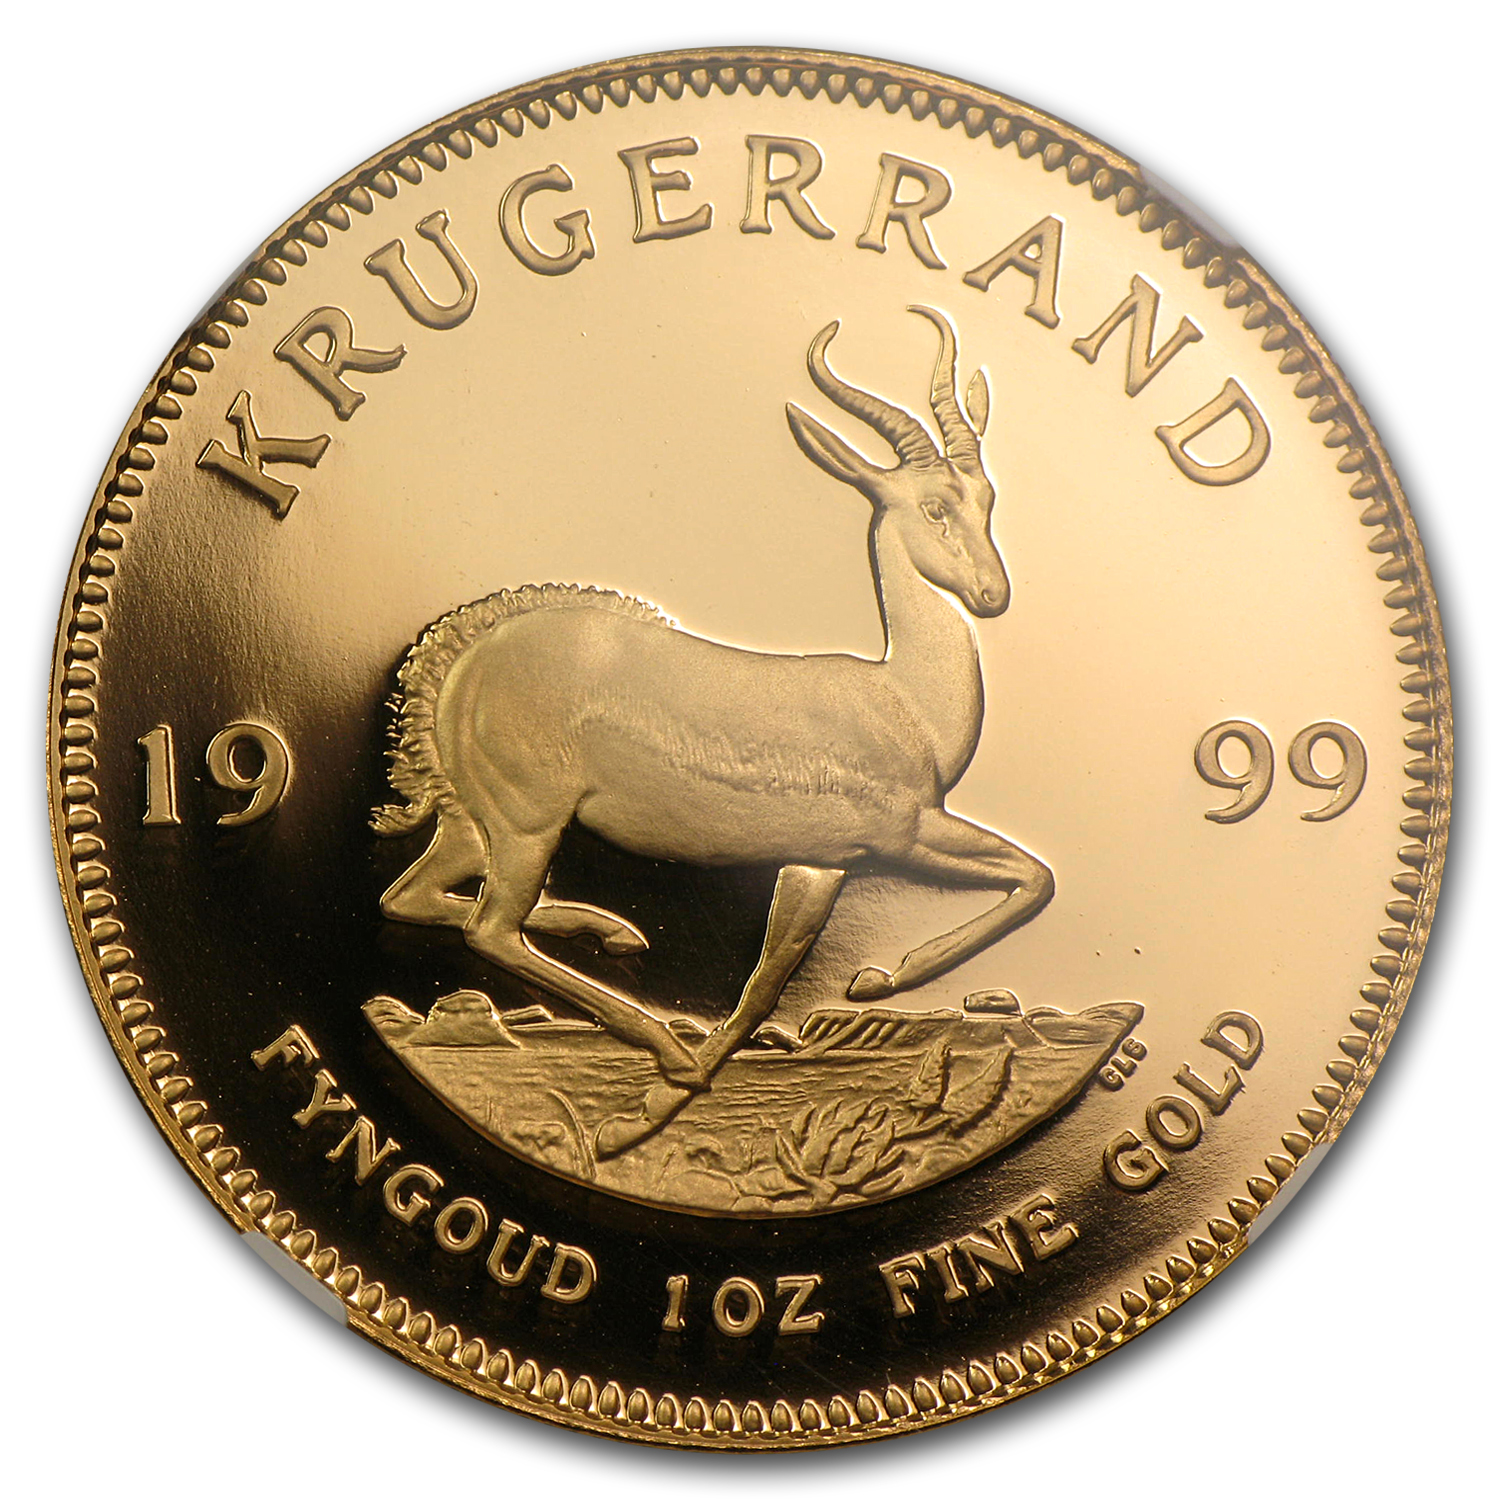 1999 South Africa 1 oz Gold Krugerrand PF-70 NGC